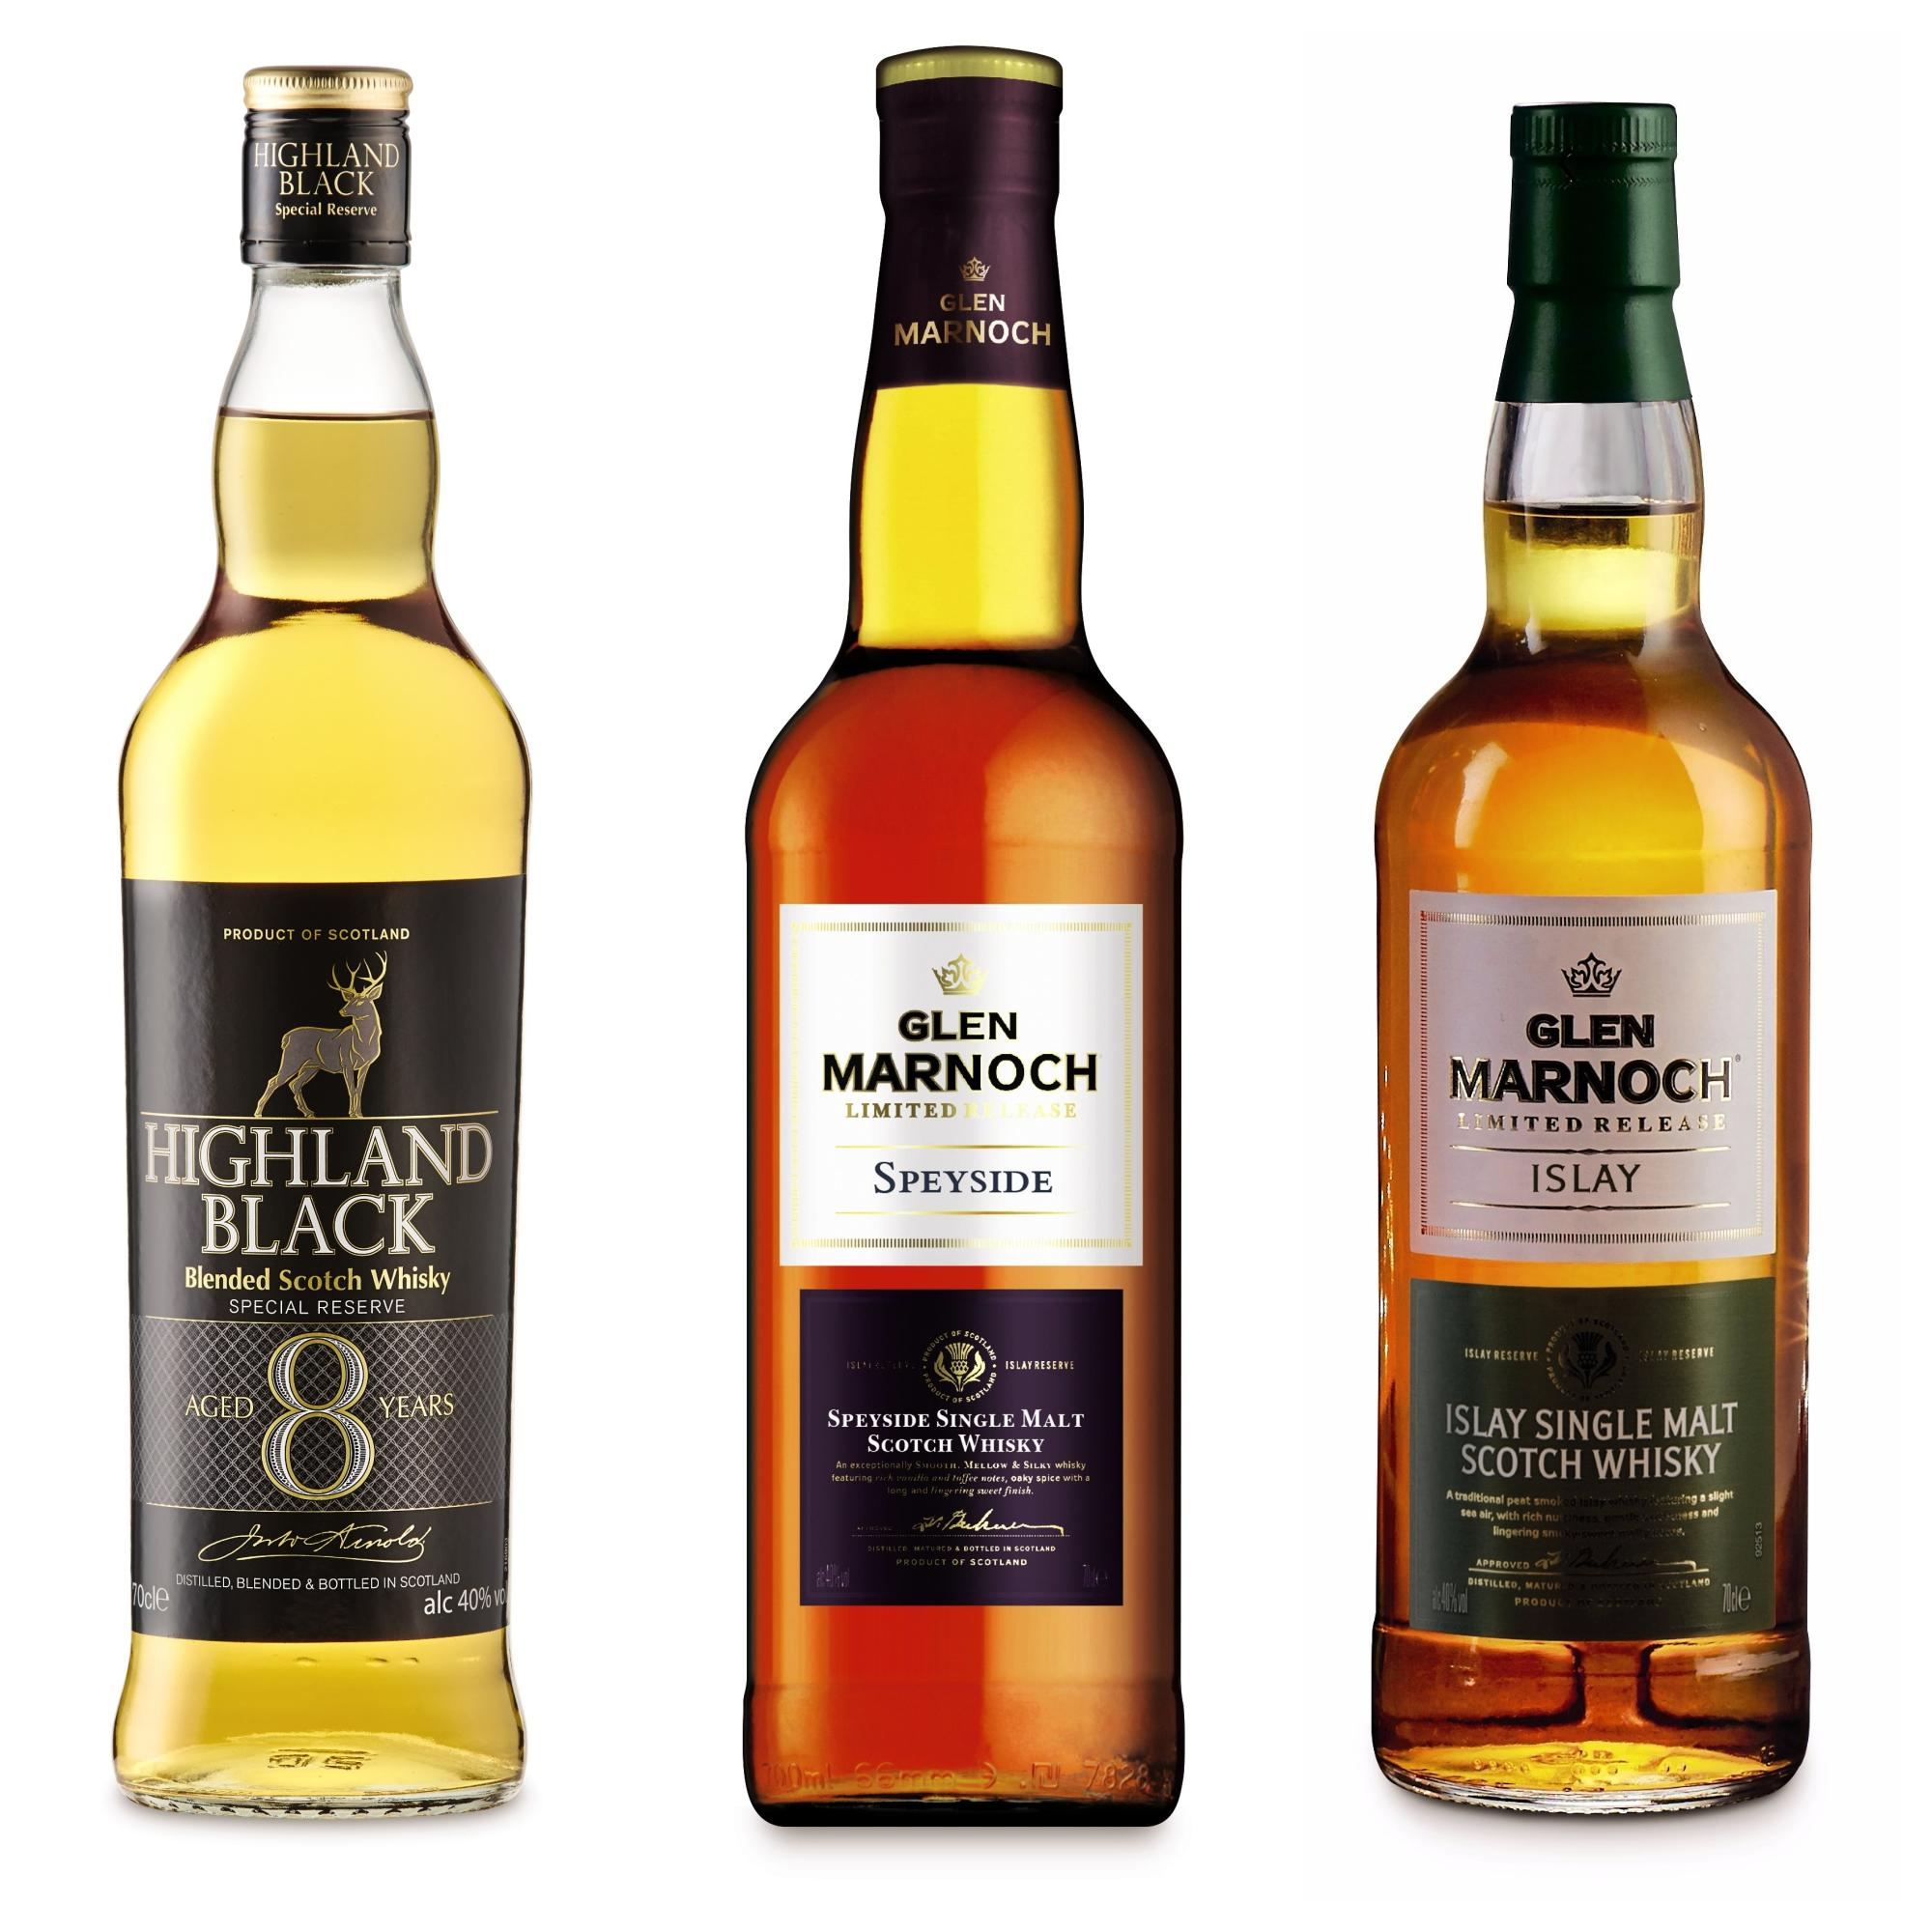 Aldis 35 Bottle Crowned The Best Whisky In The World...Again